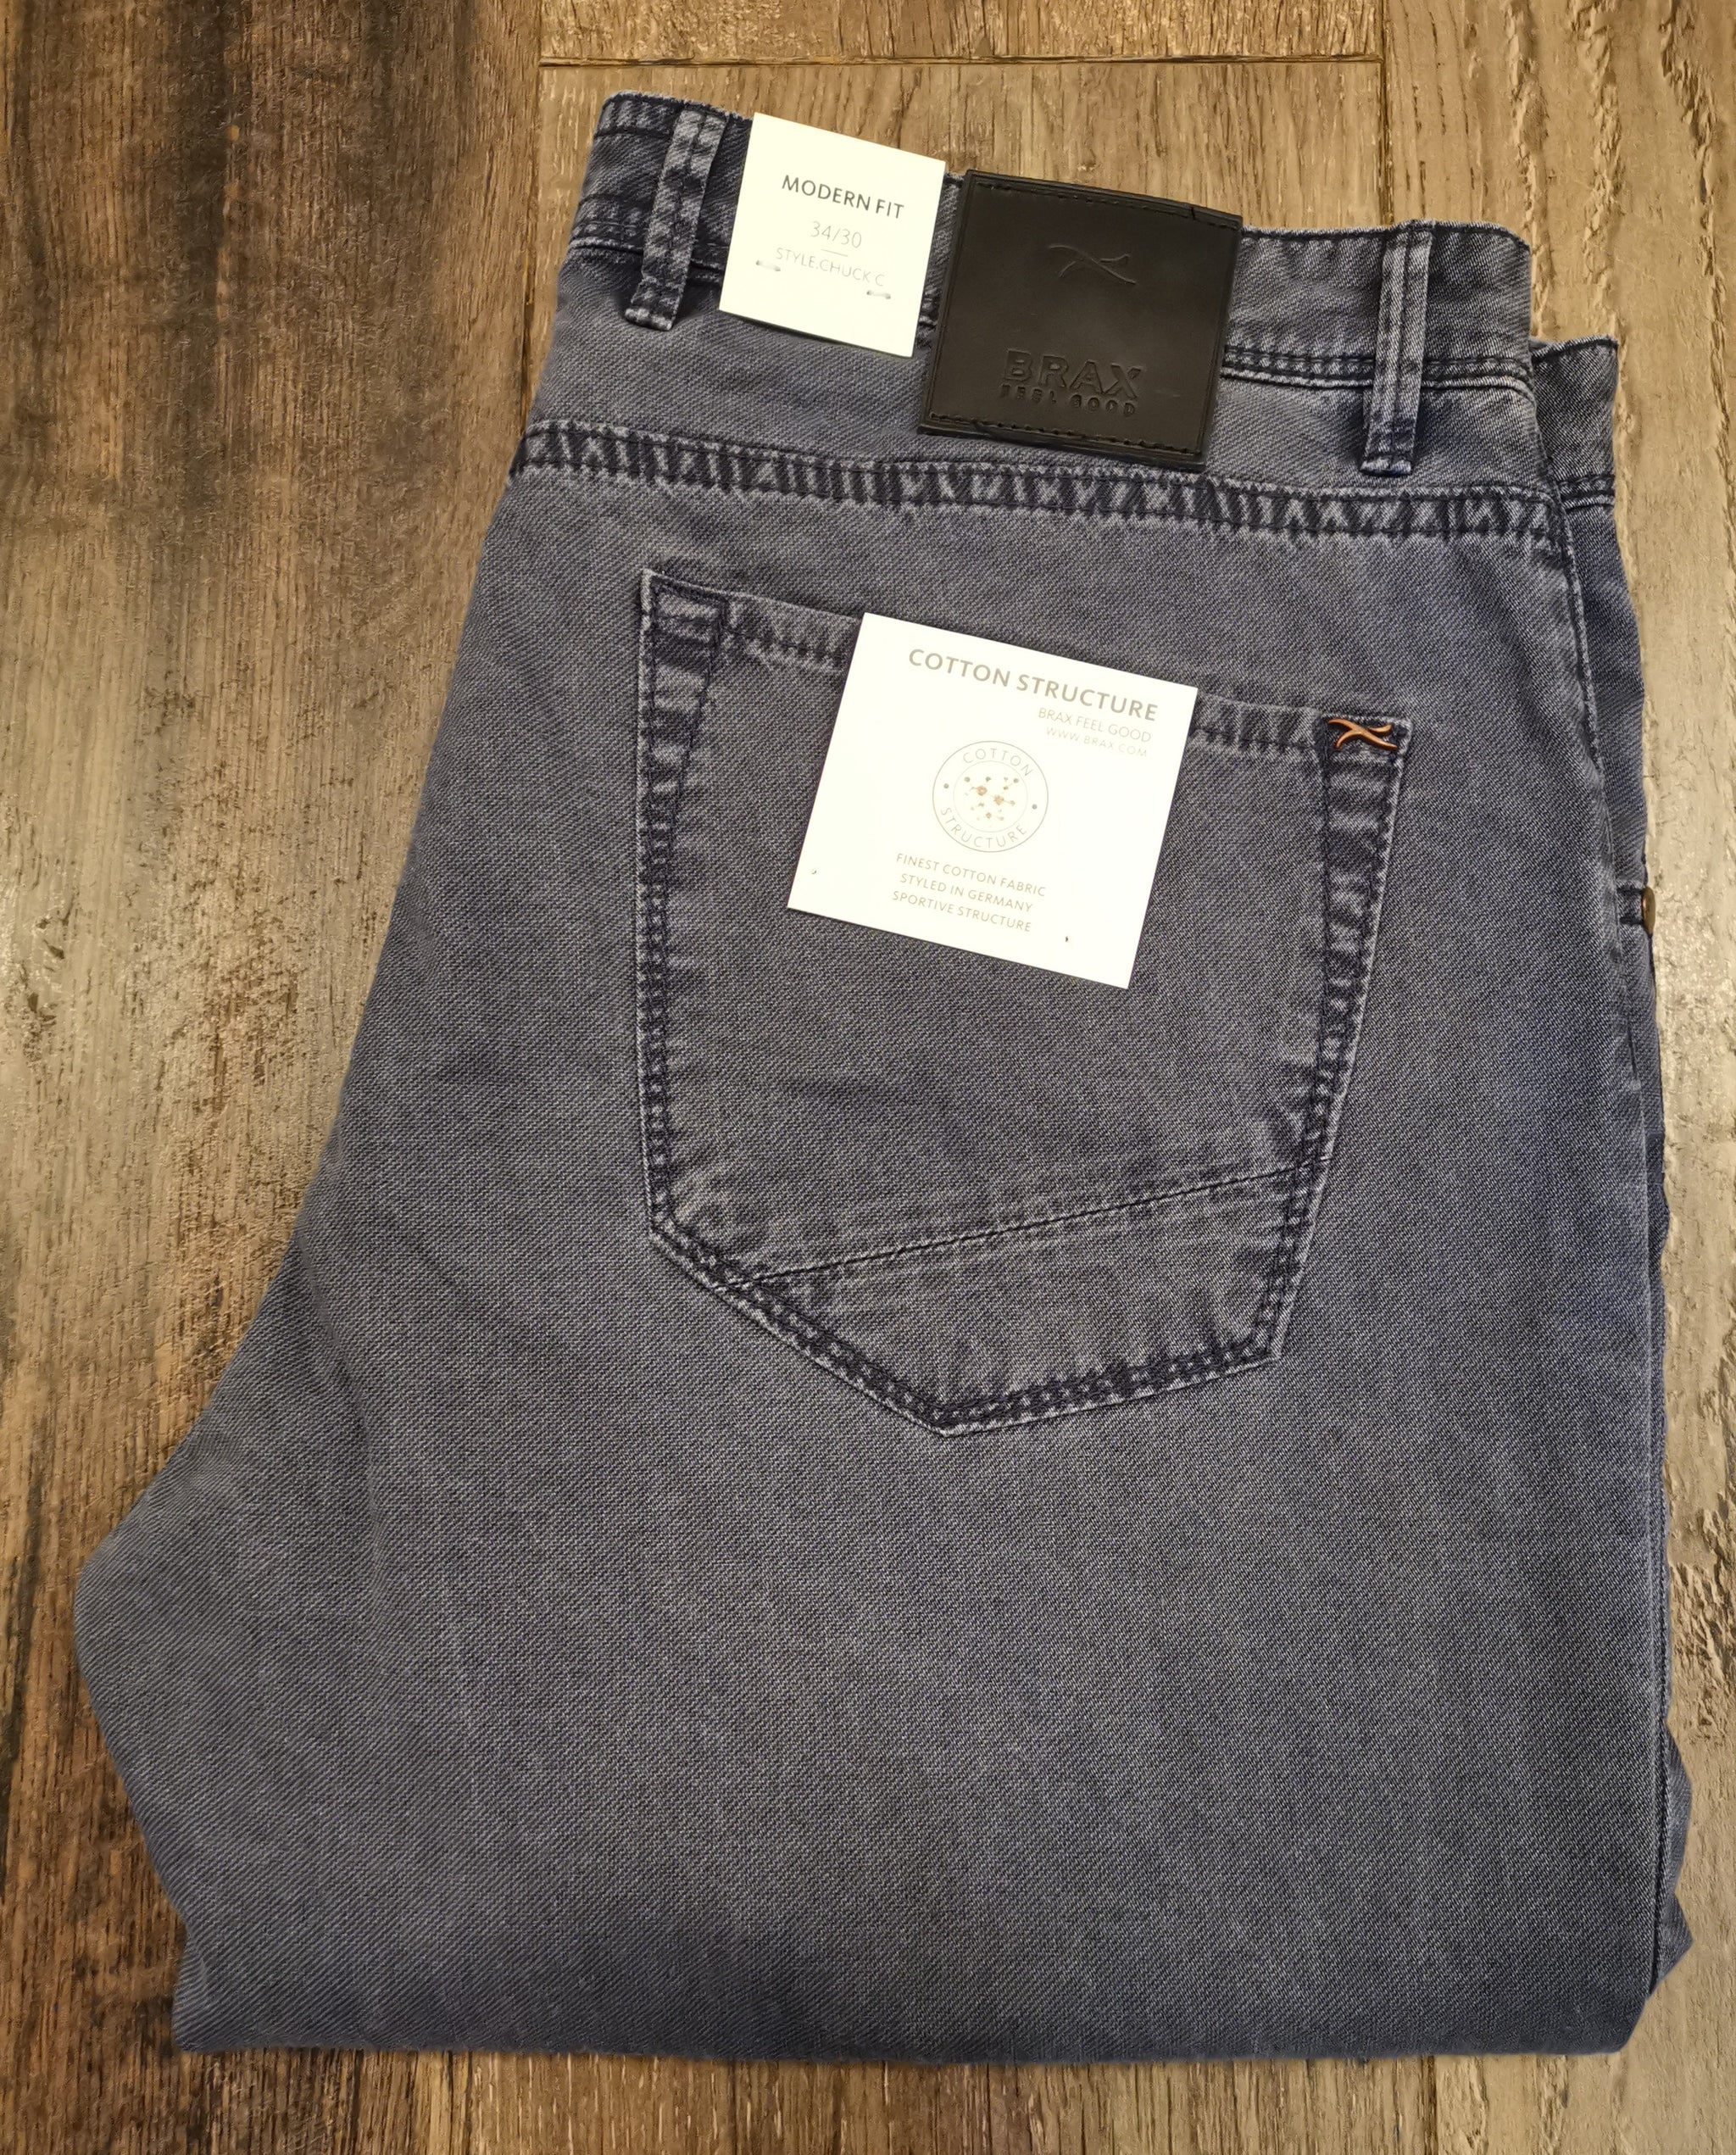 huge discount website for discount great deals Brax Chuck Five Pocket Summer Cotton jeans – Retreat ...